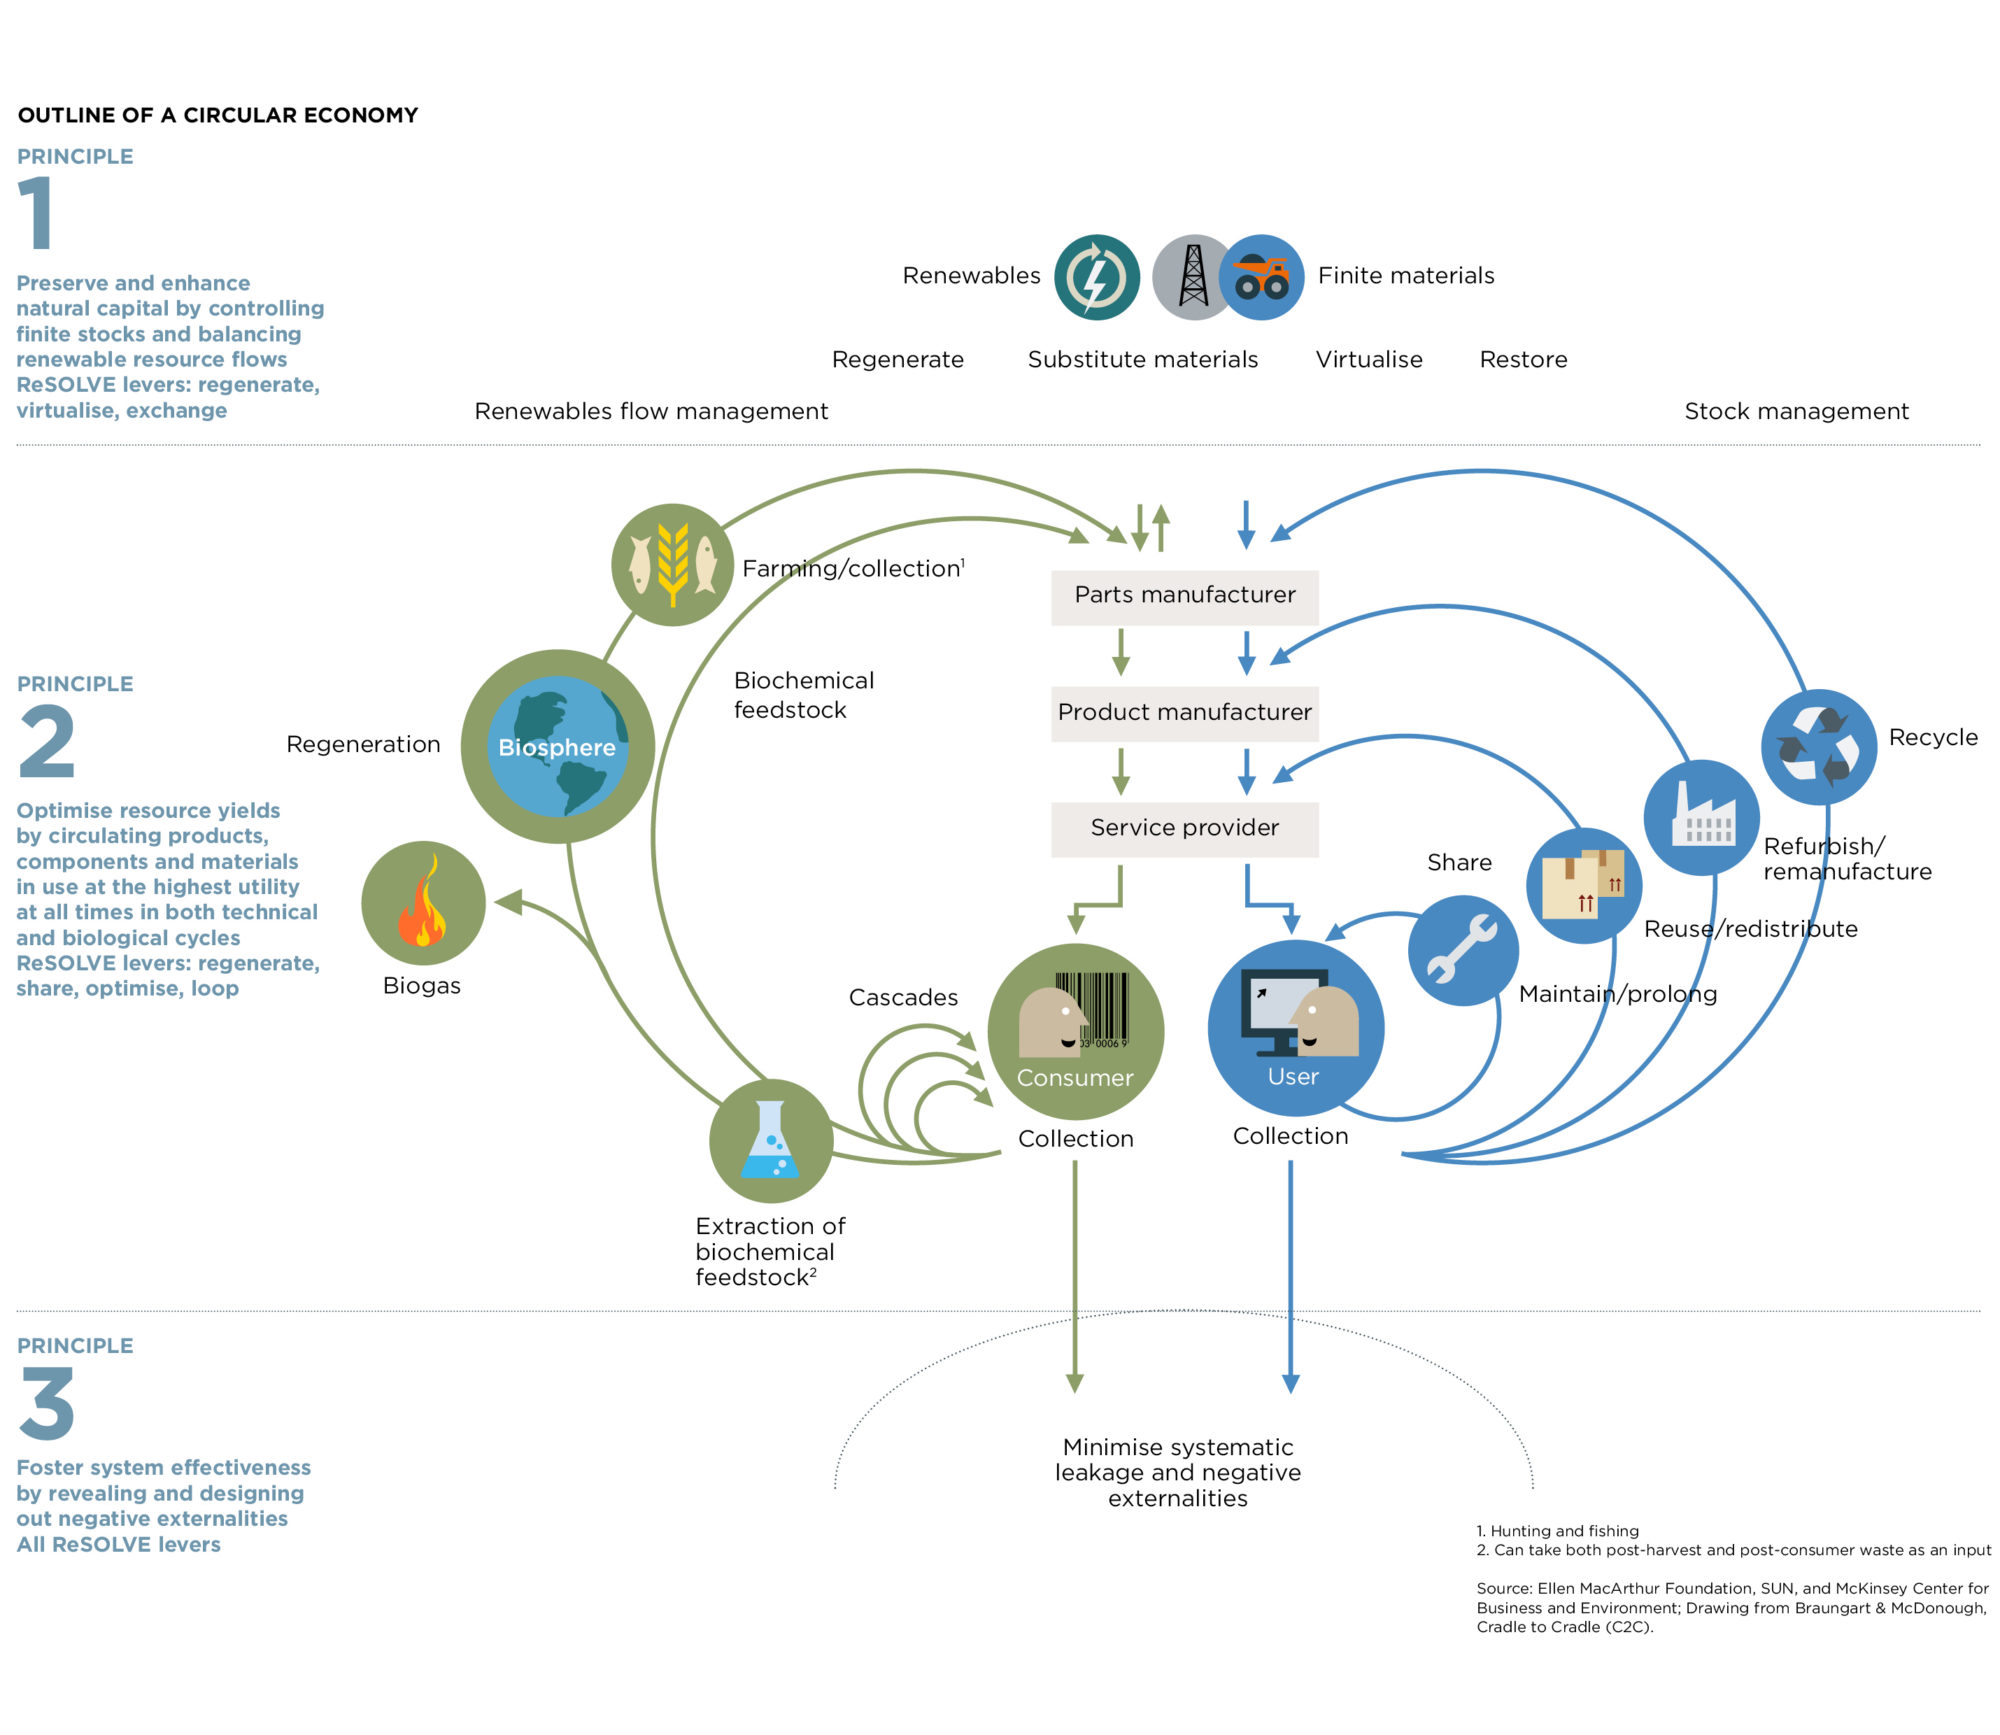 Figure 1 - Infographic with principles and cycles of a circular economy